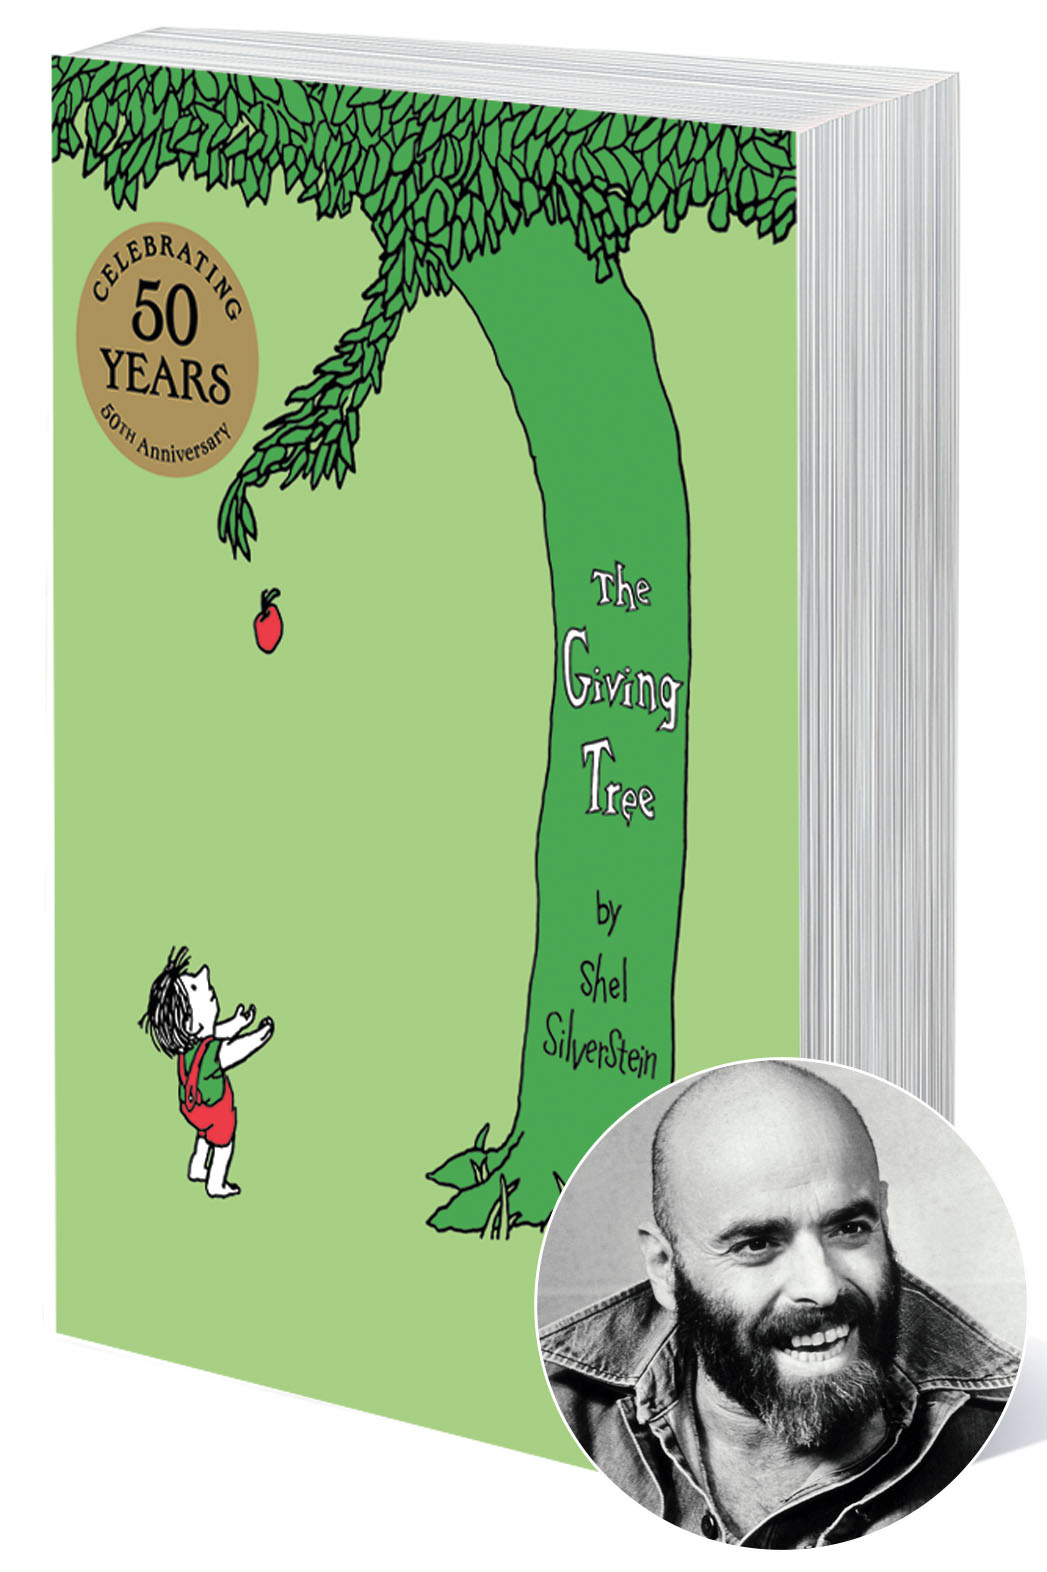 Issue 6 REP Deals The Giving Tree Silverstein Inset - P 2014